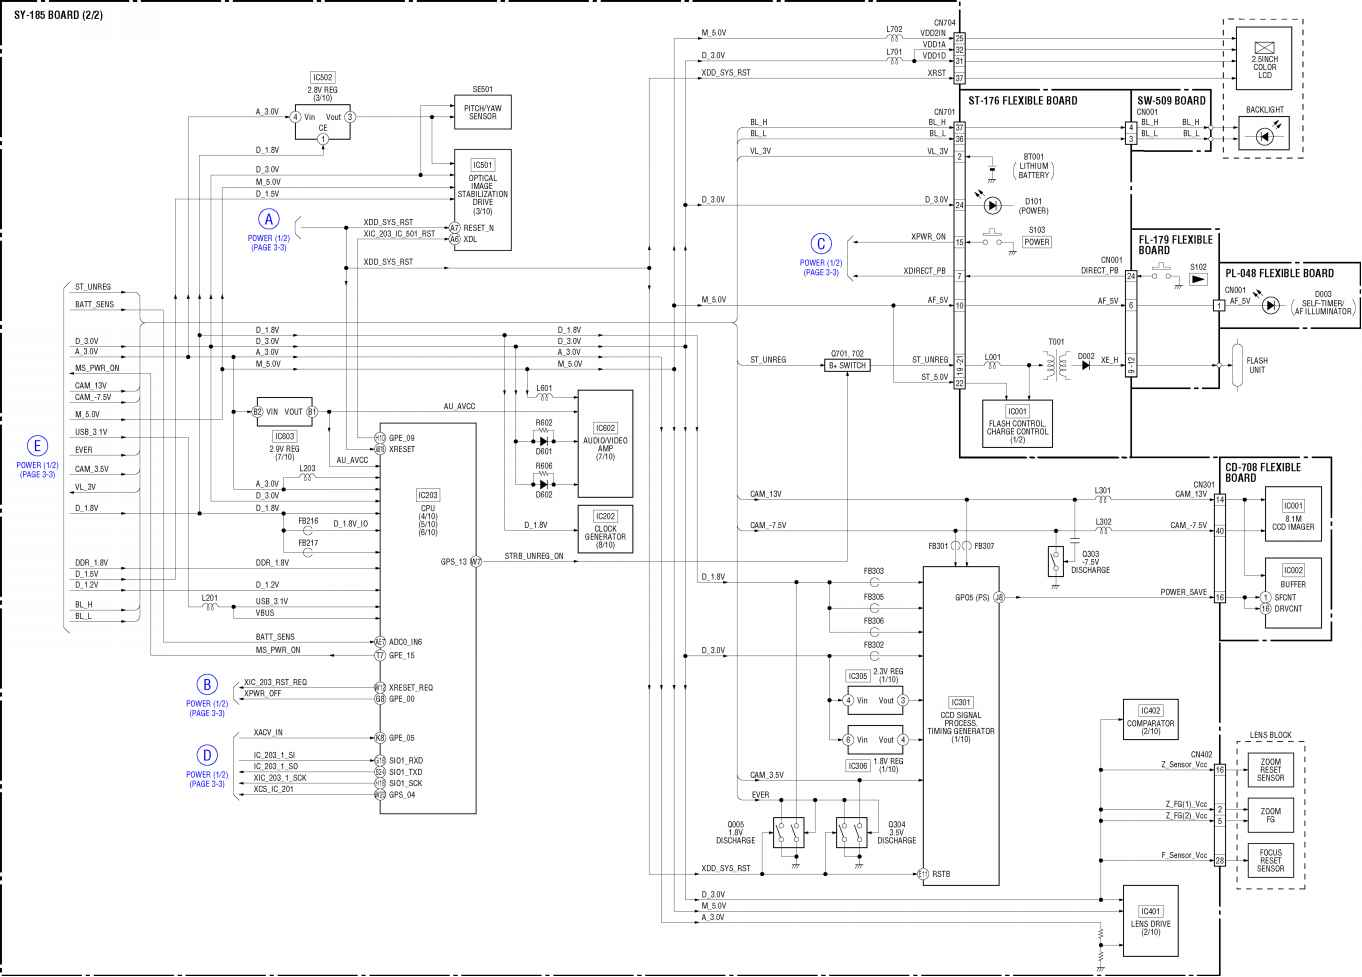 dsc dls pc link cable diagram how do you use a venn sony h3 l2 raynet repair services